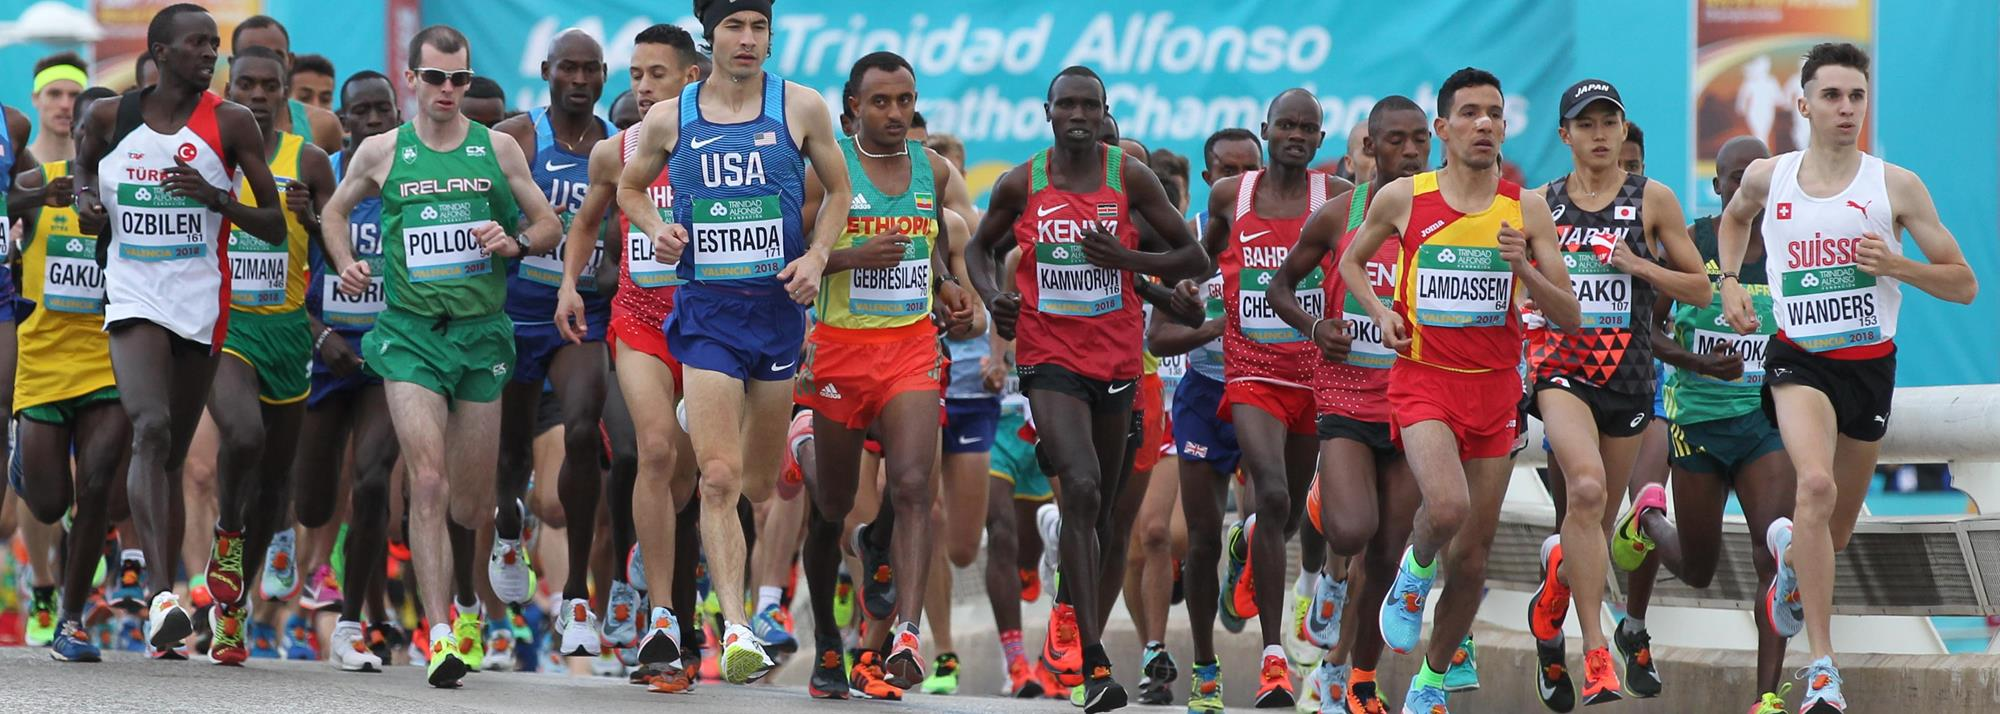 World Athletics Road Running Championships to be included in the global calendar